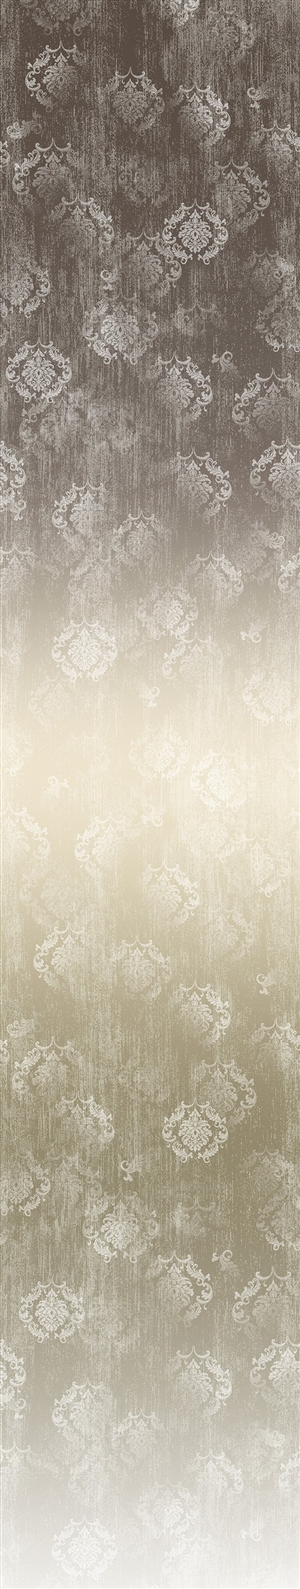 Timeless ombre digital print fabric in brown and neutral tones